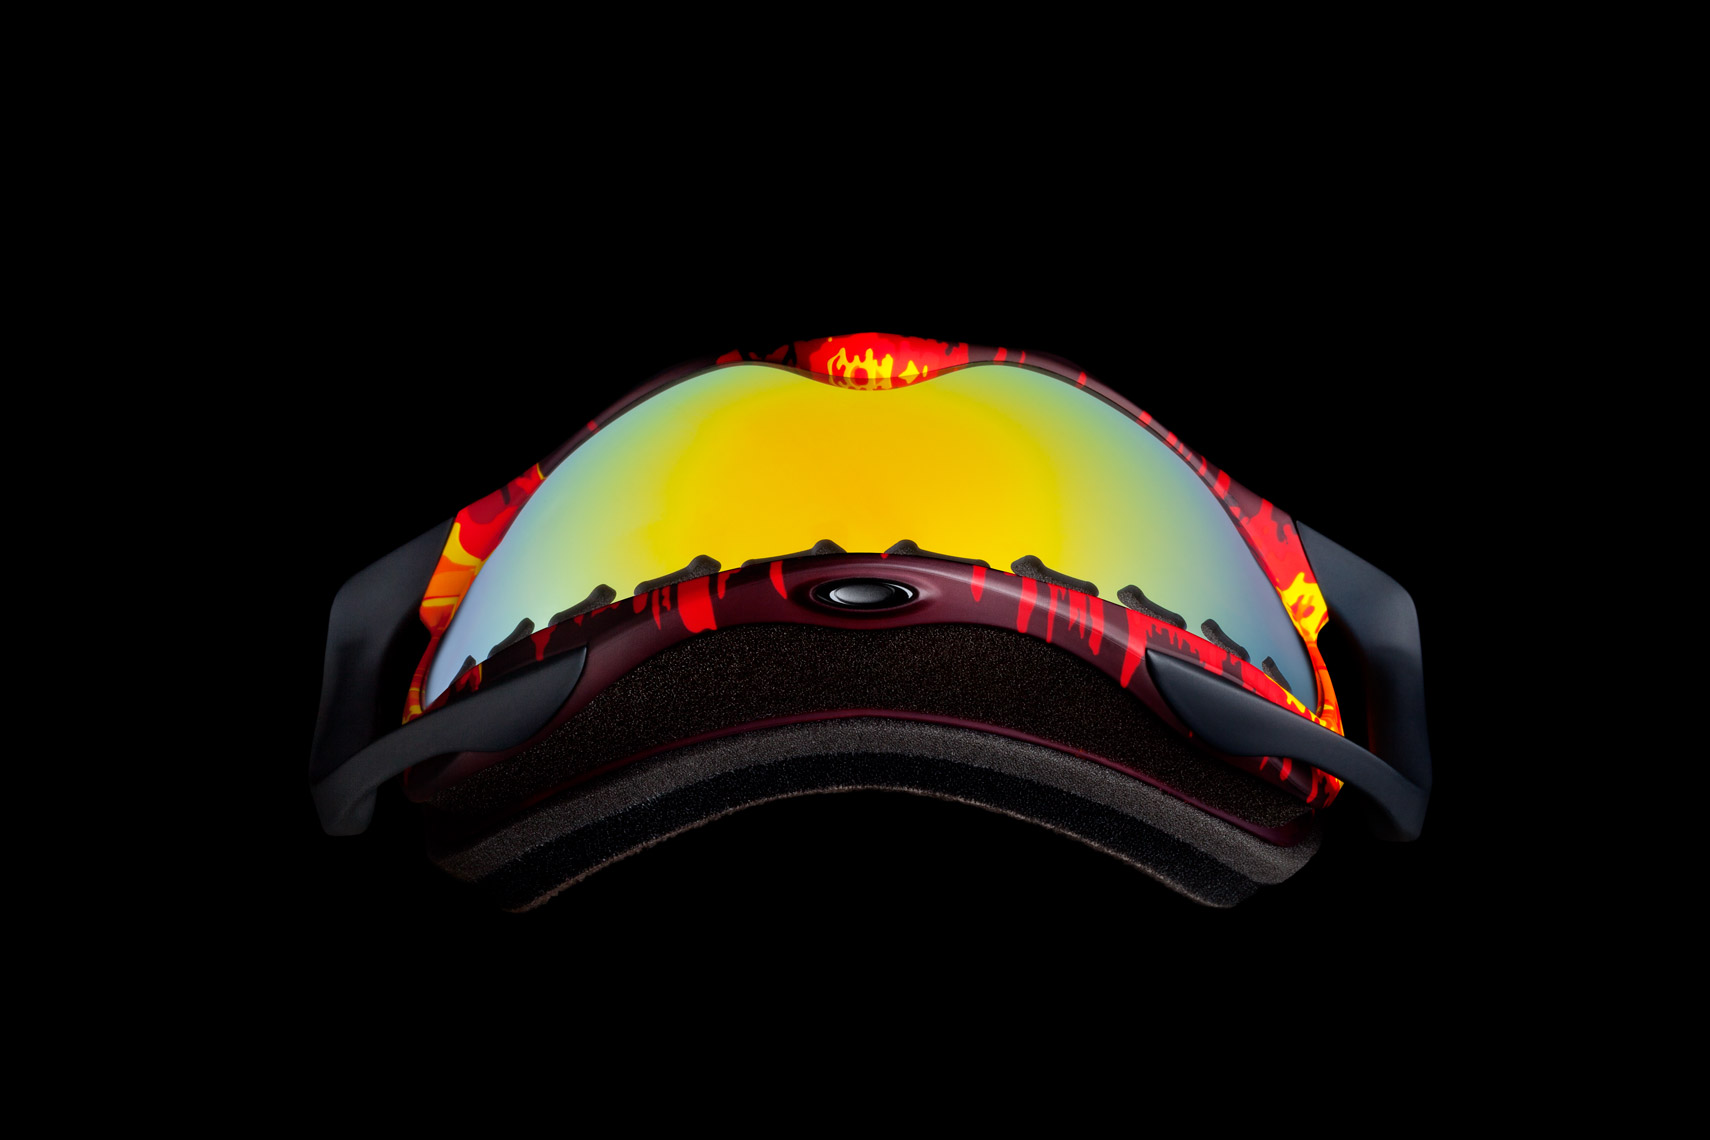 Product Photography Gear Oakley Flightdeck Snow Goggles Winter Sport Melting Red Yellow Orange Beauty Lens Denver